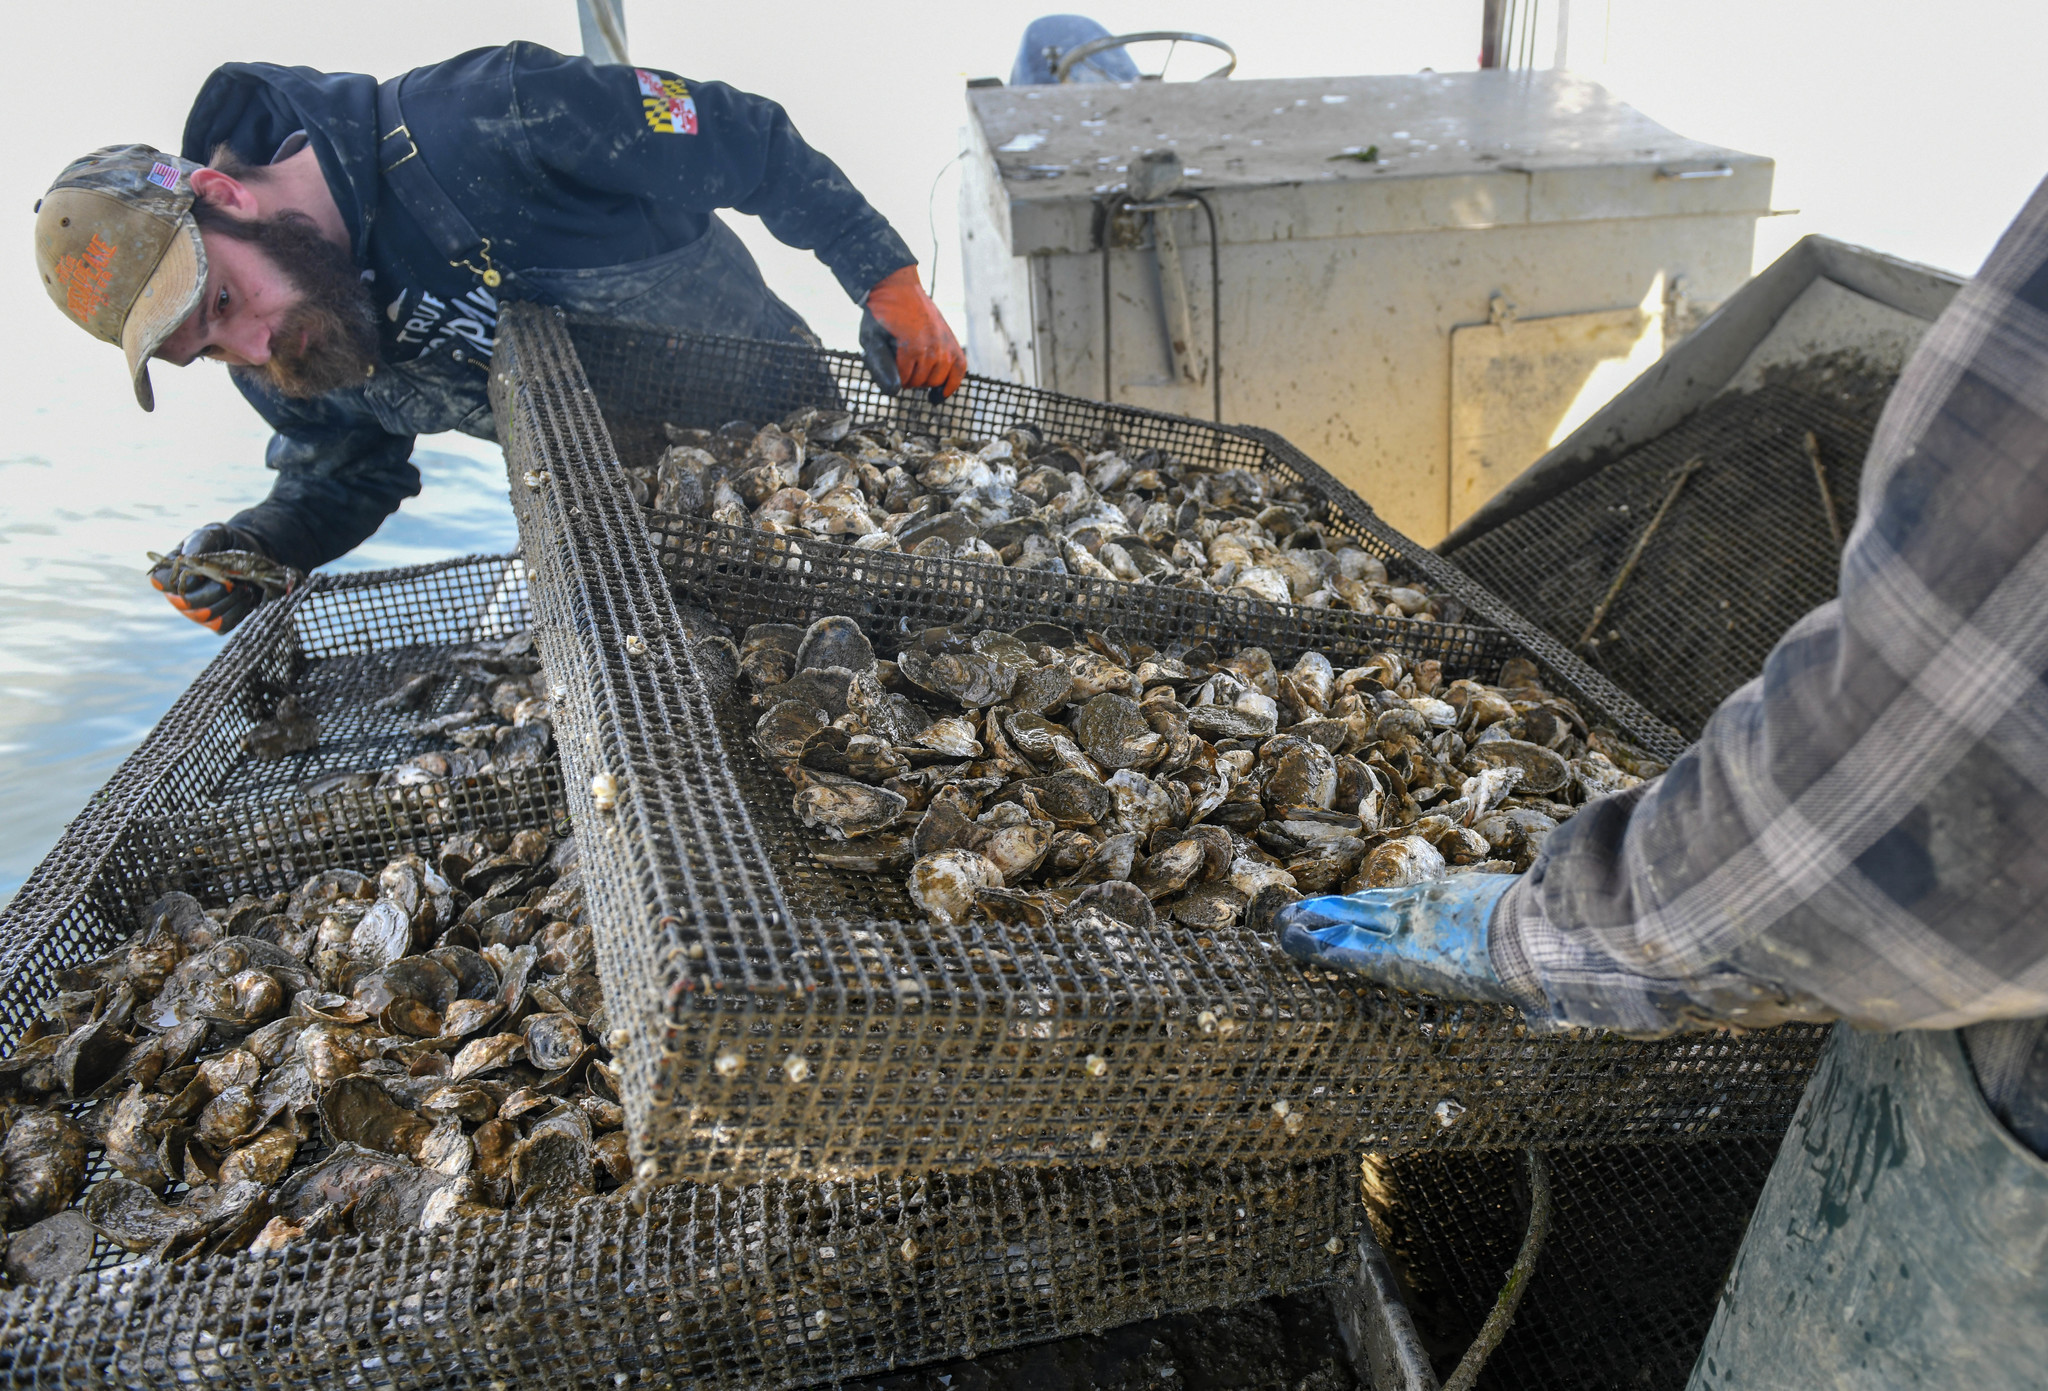 Private Oyster Farming Has Helped The Chesapeake Bay But Not Everyone Is Happy With The Practice Baltimore Sun